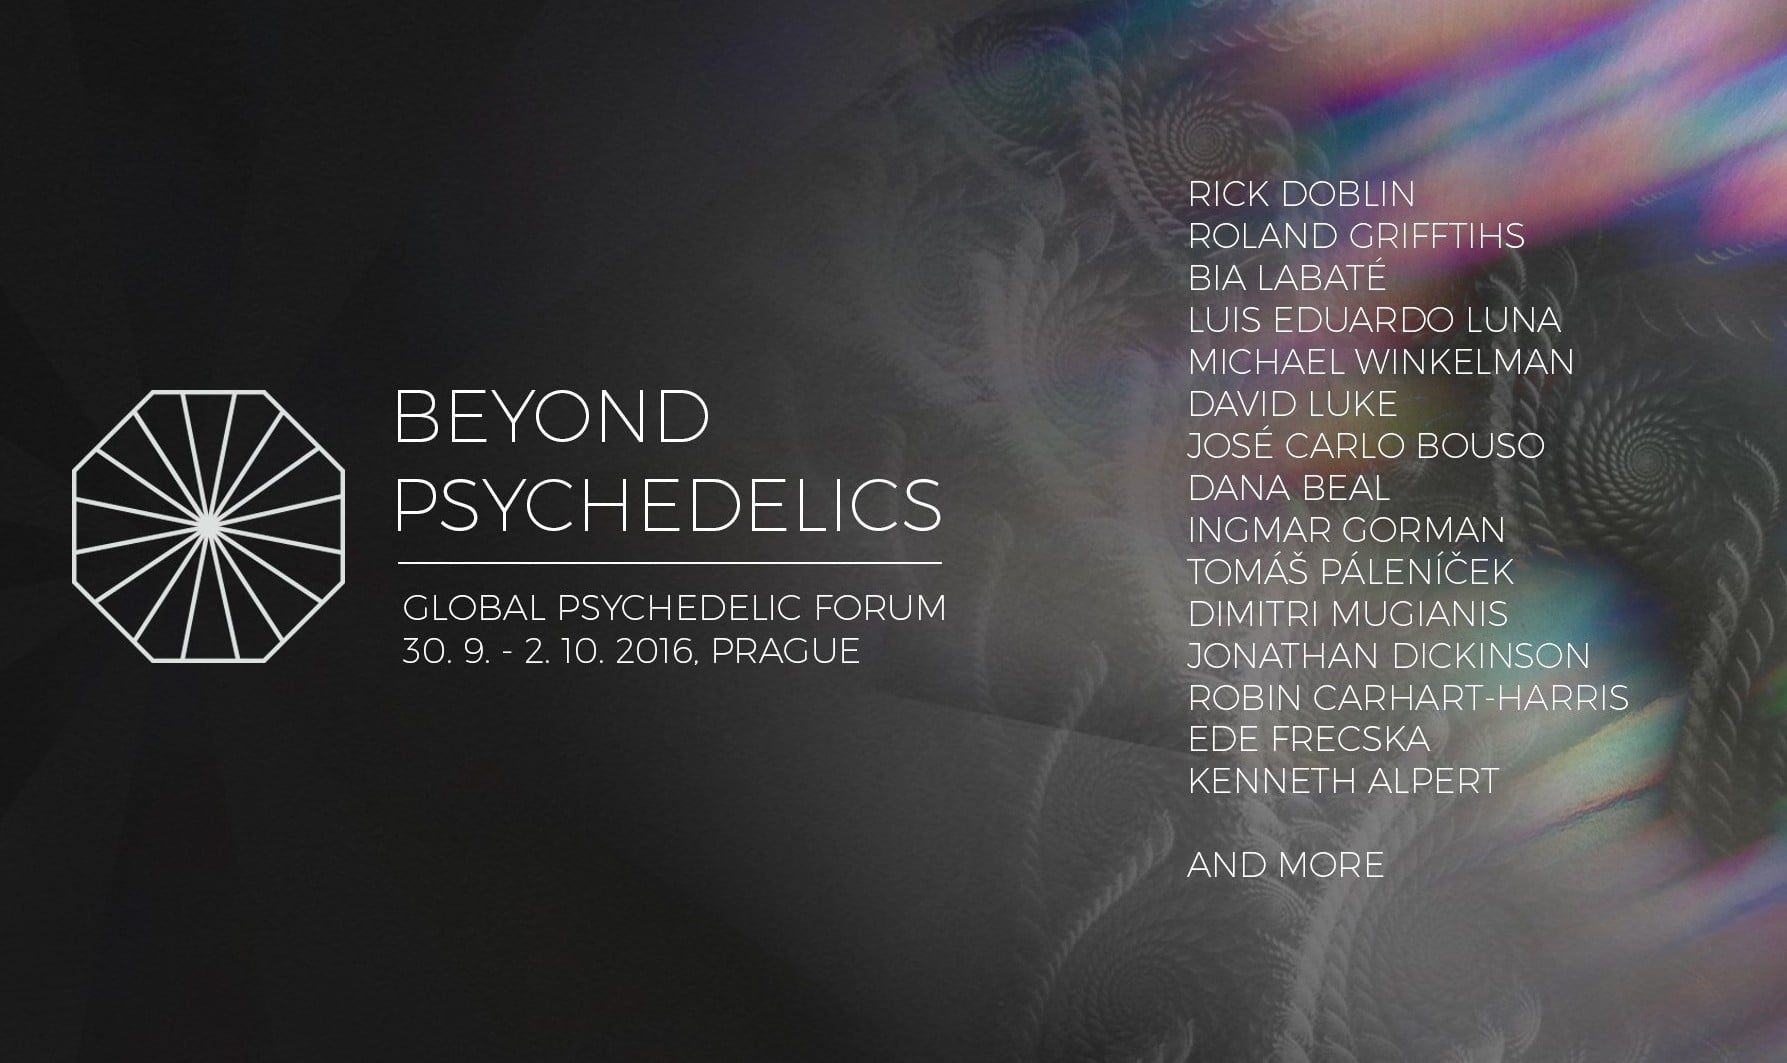 Beyond Psychedelics 2016: Global Psychedelic Forum in Prague Takes a Holistic Approach